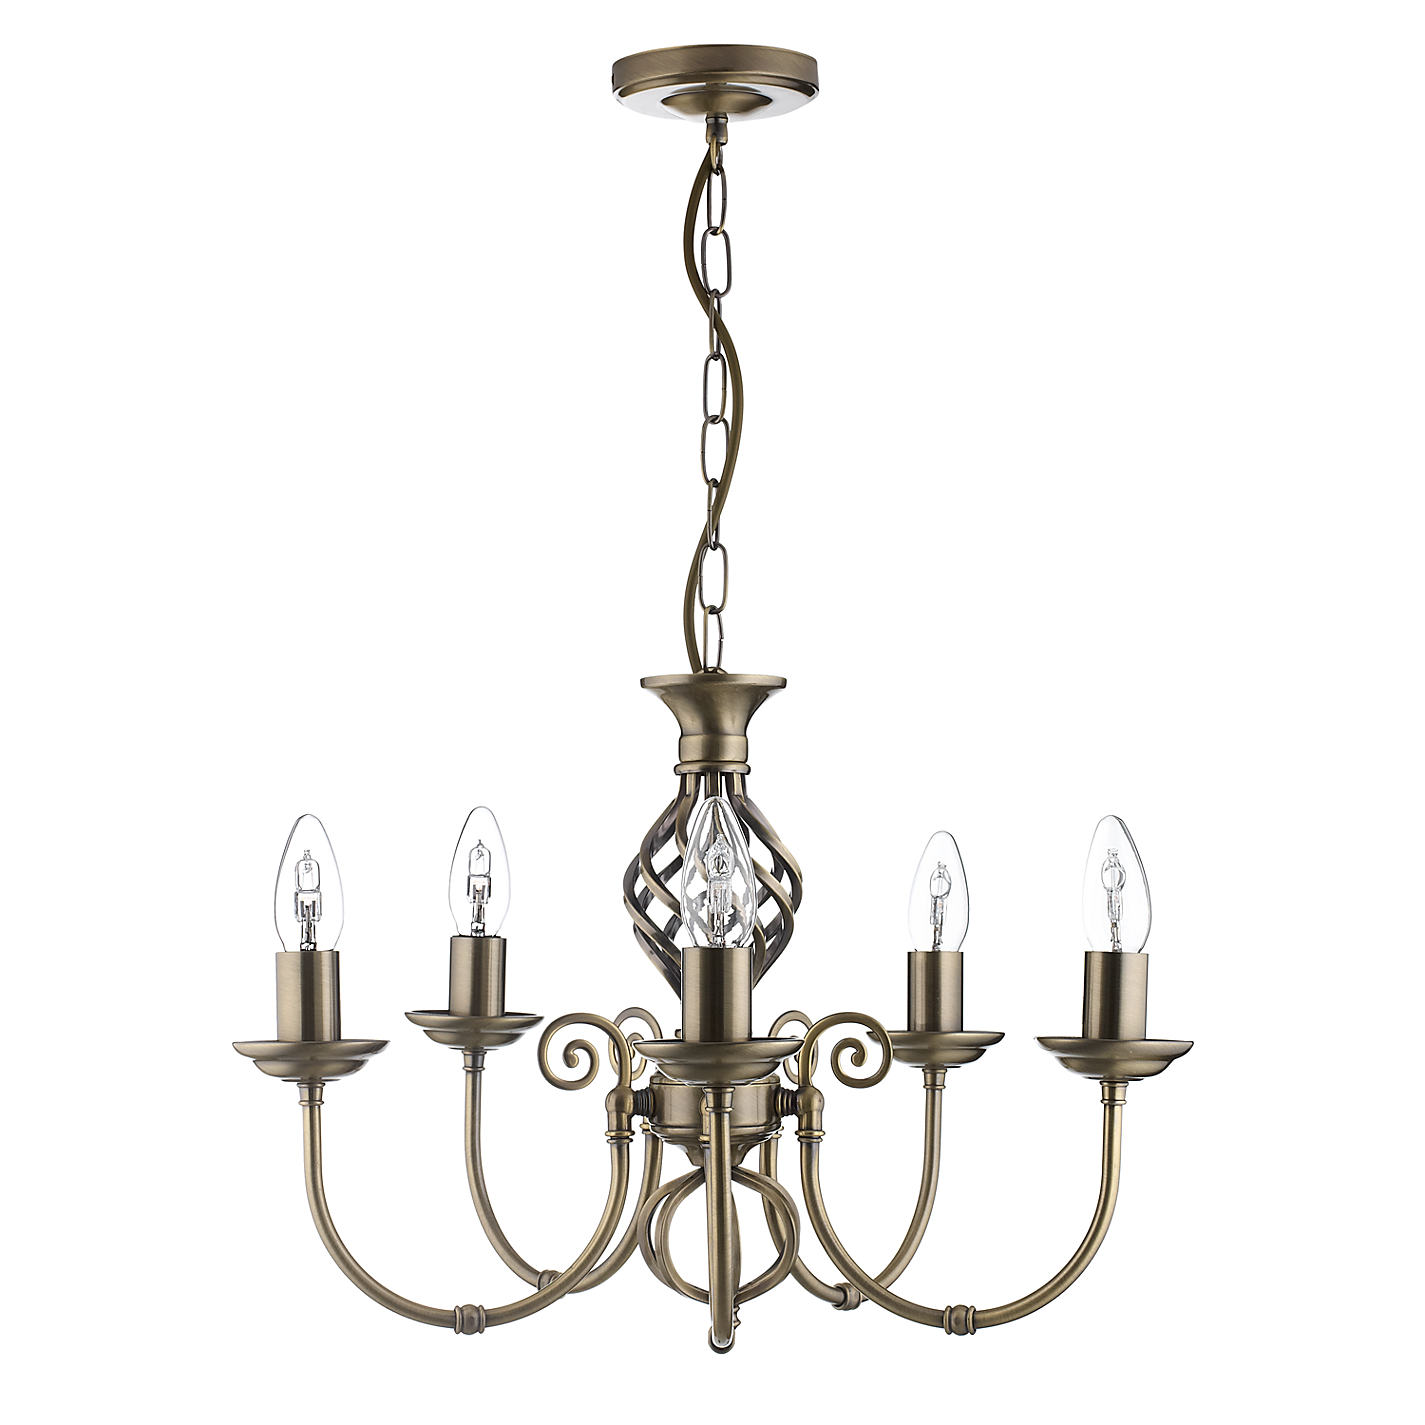 Buy john lewis malik chandelier 5 arm john lewis buy john lewis malik chandelier 5 arm online at johnlewis mozeypictures Gallery